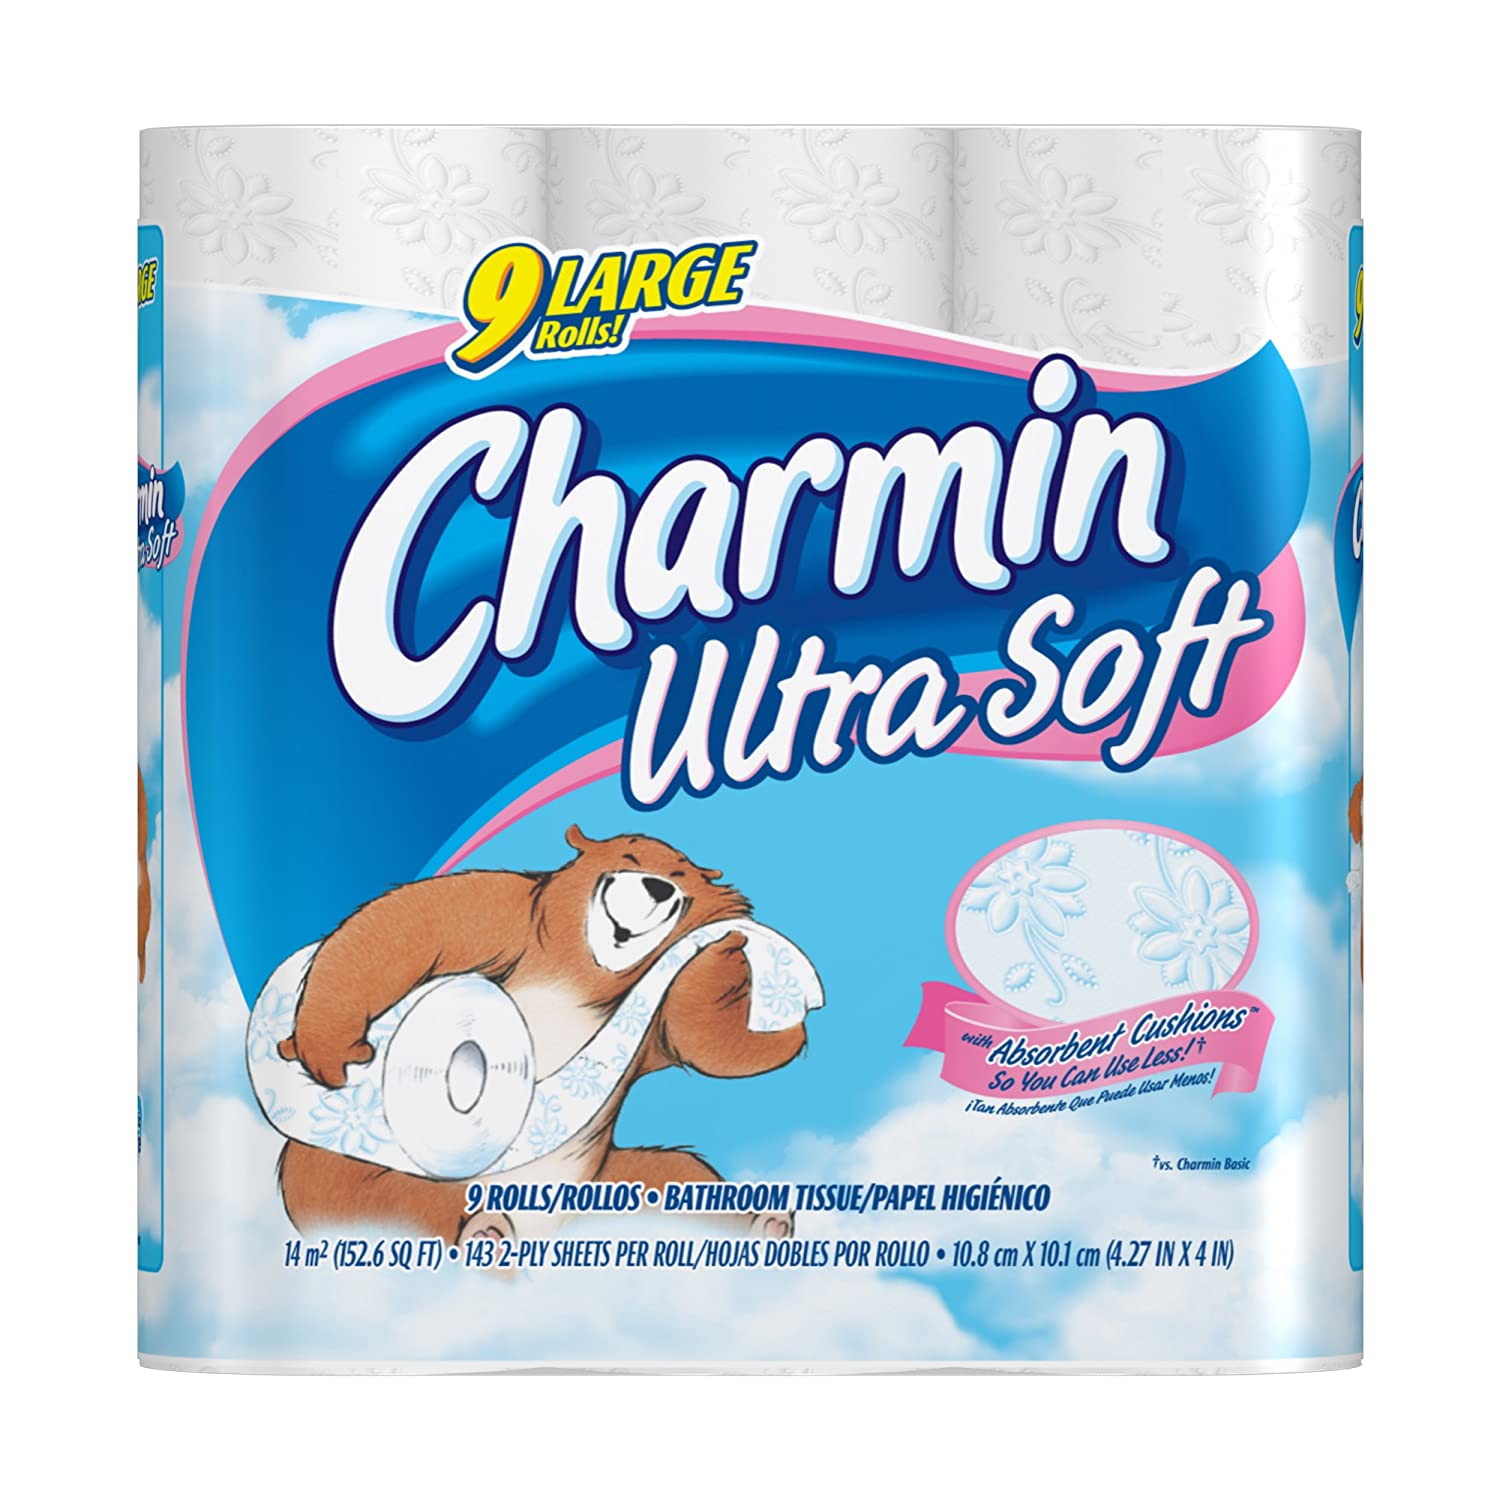 Amazon Charmin Ultra Soft 9 Large Rolls 143 2 Ply Sheets Per Roll Pack Of 4 Health Personal Care